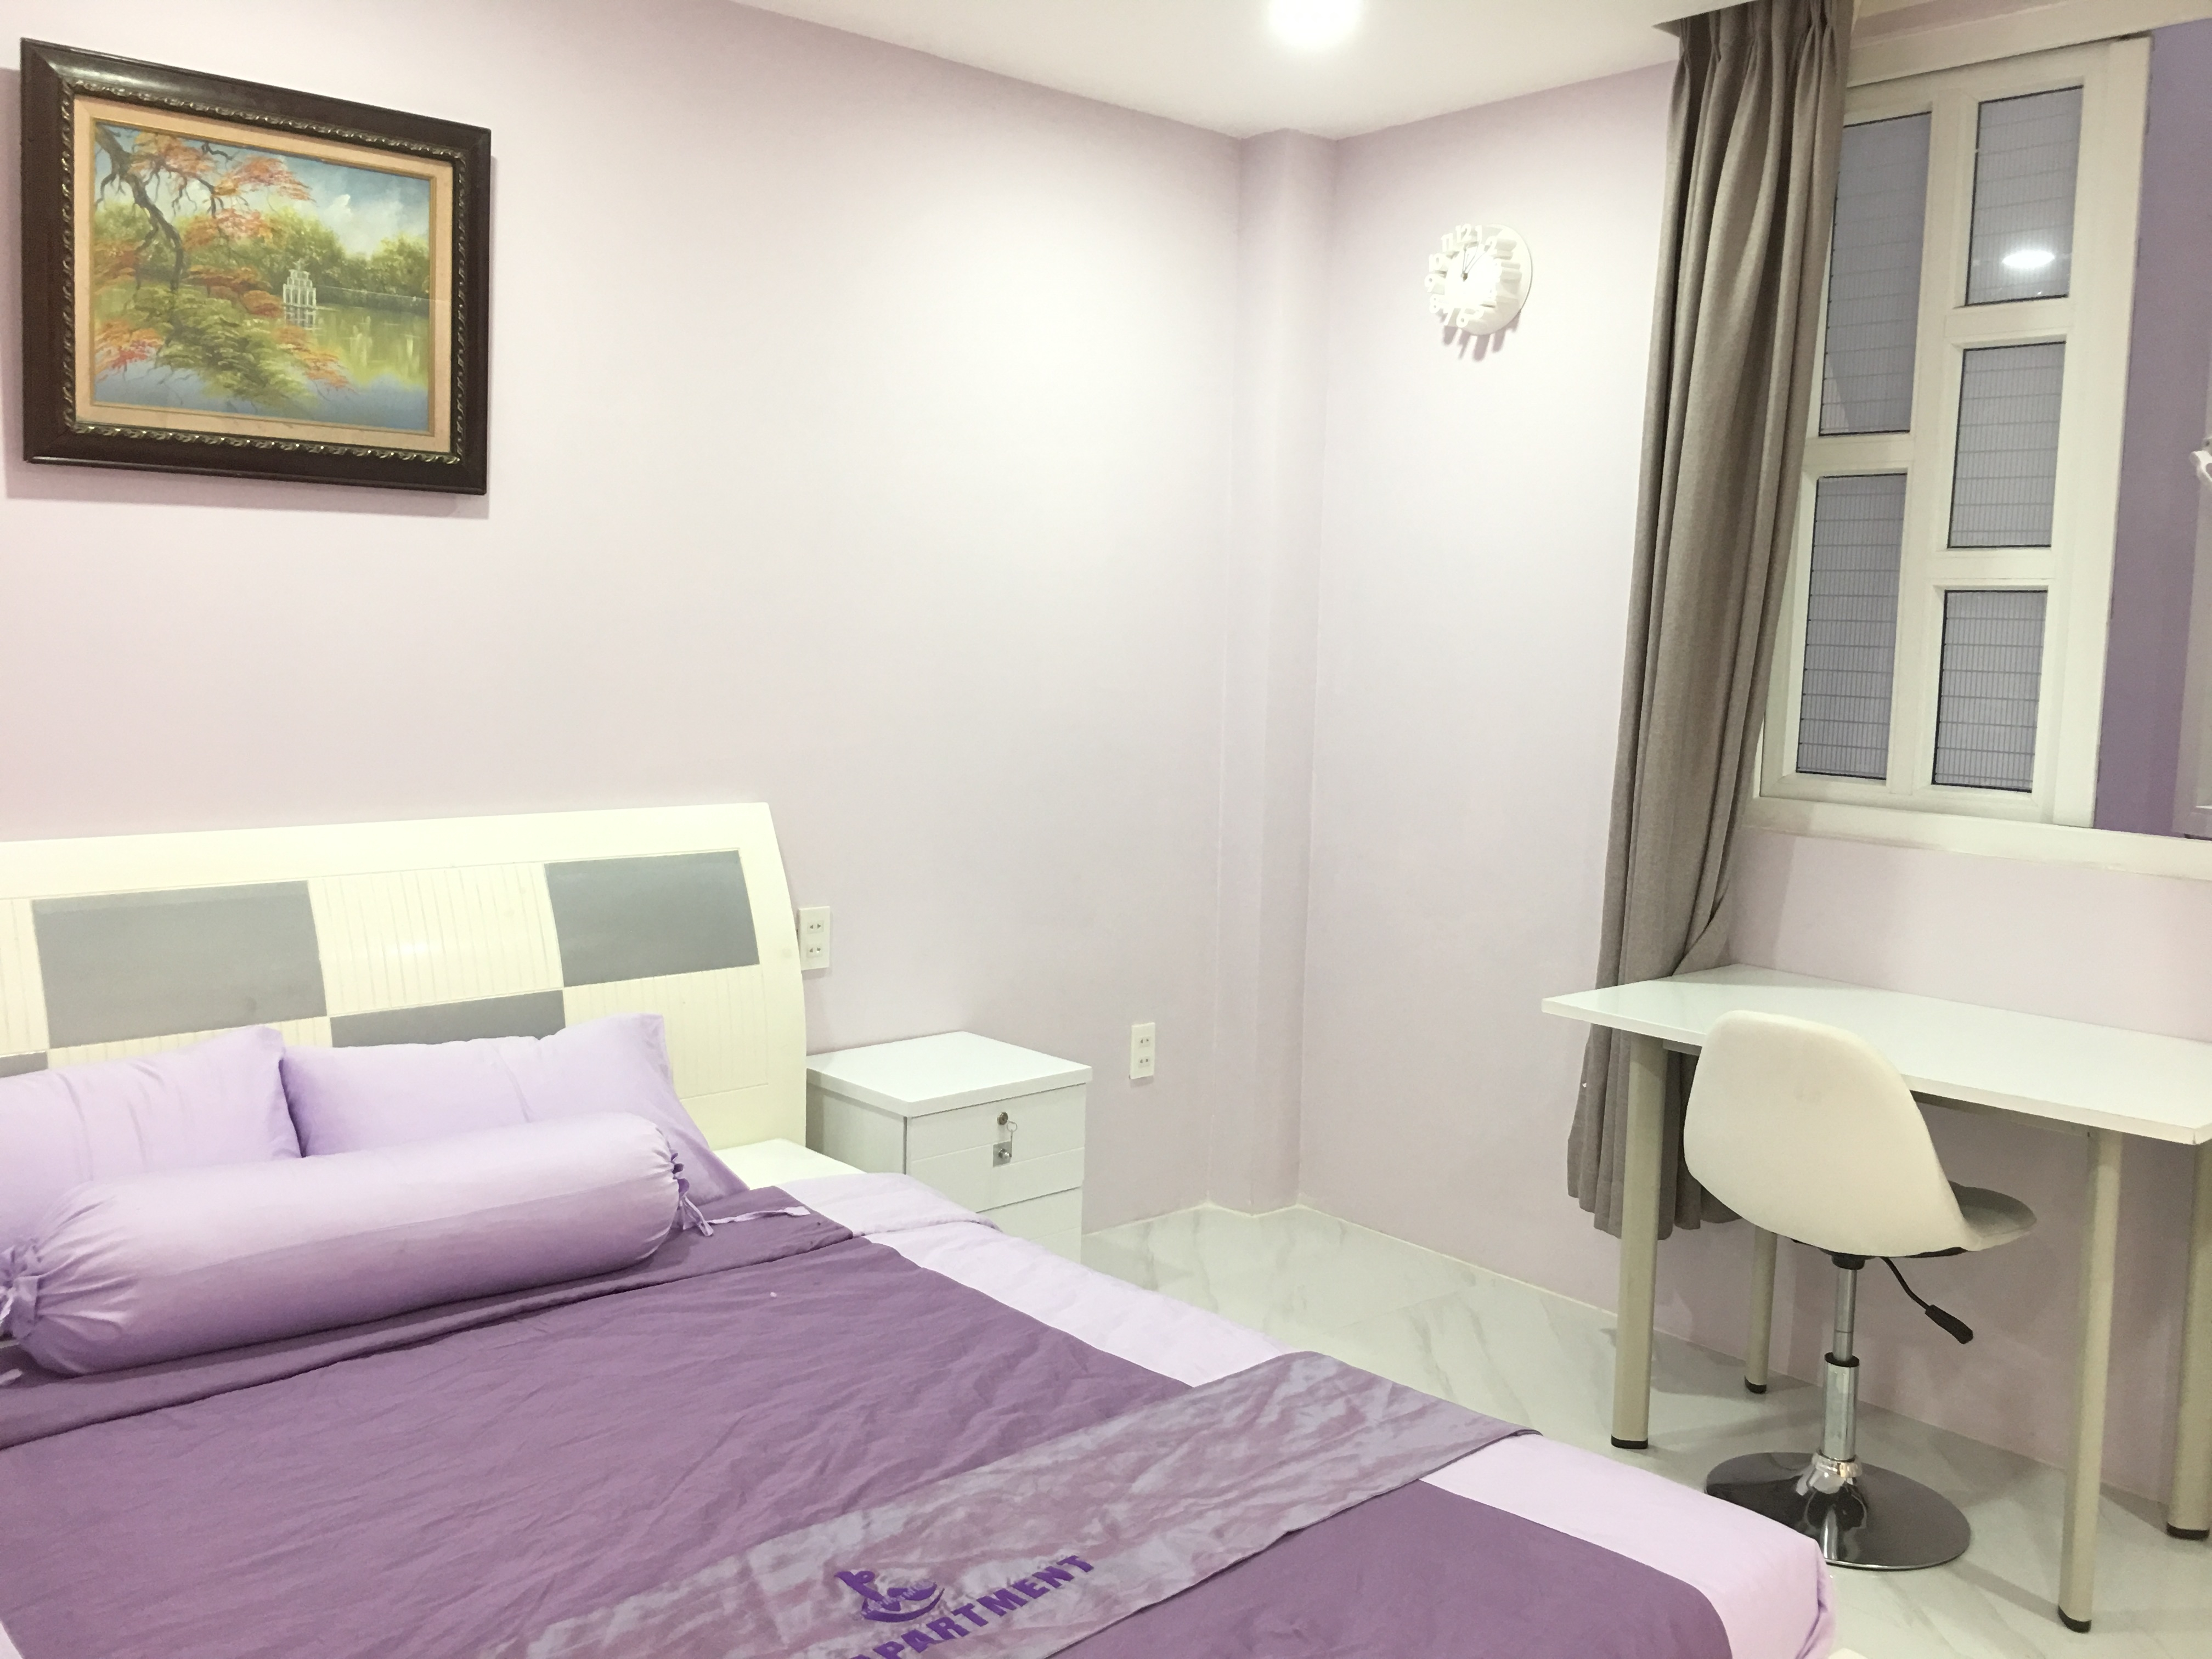 Family Room (2 Bed Rooms) 1101